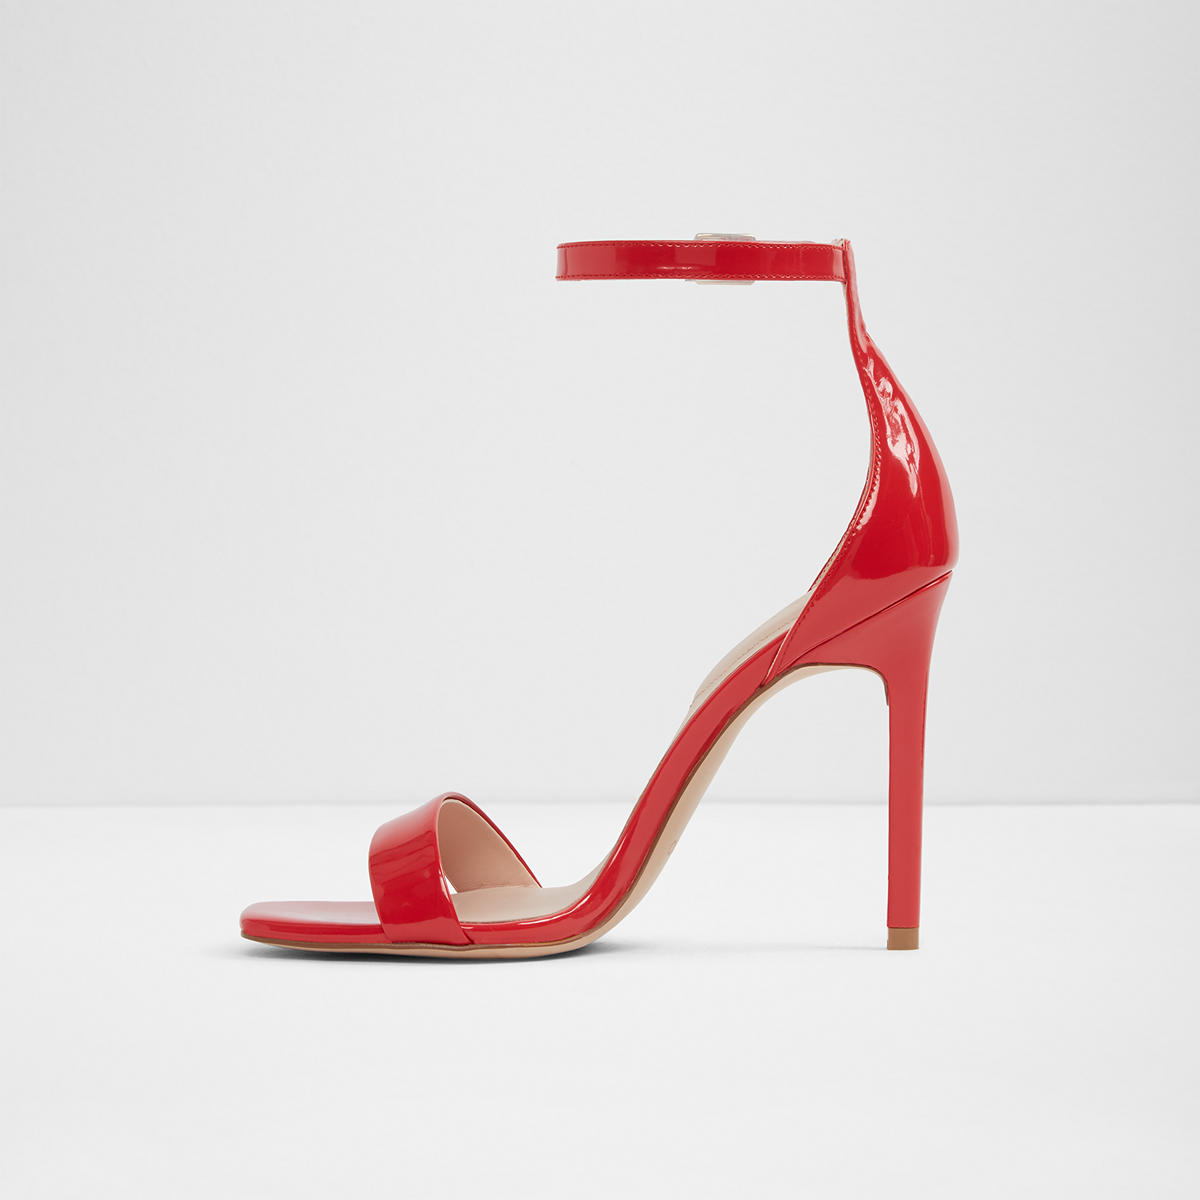 ALDO Derolila Heeled Sandals best seller cheap price S7YmTC